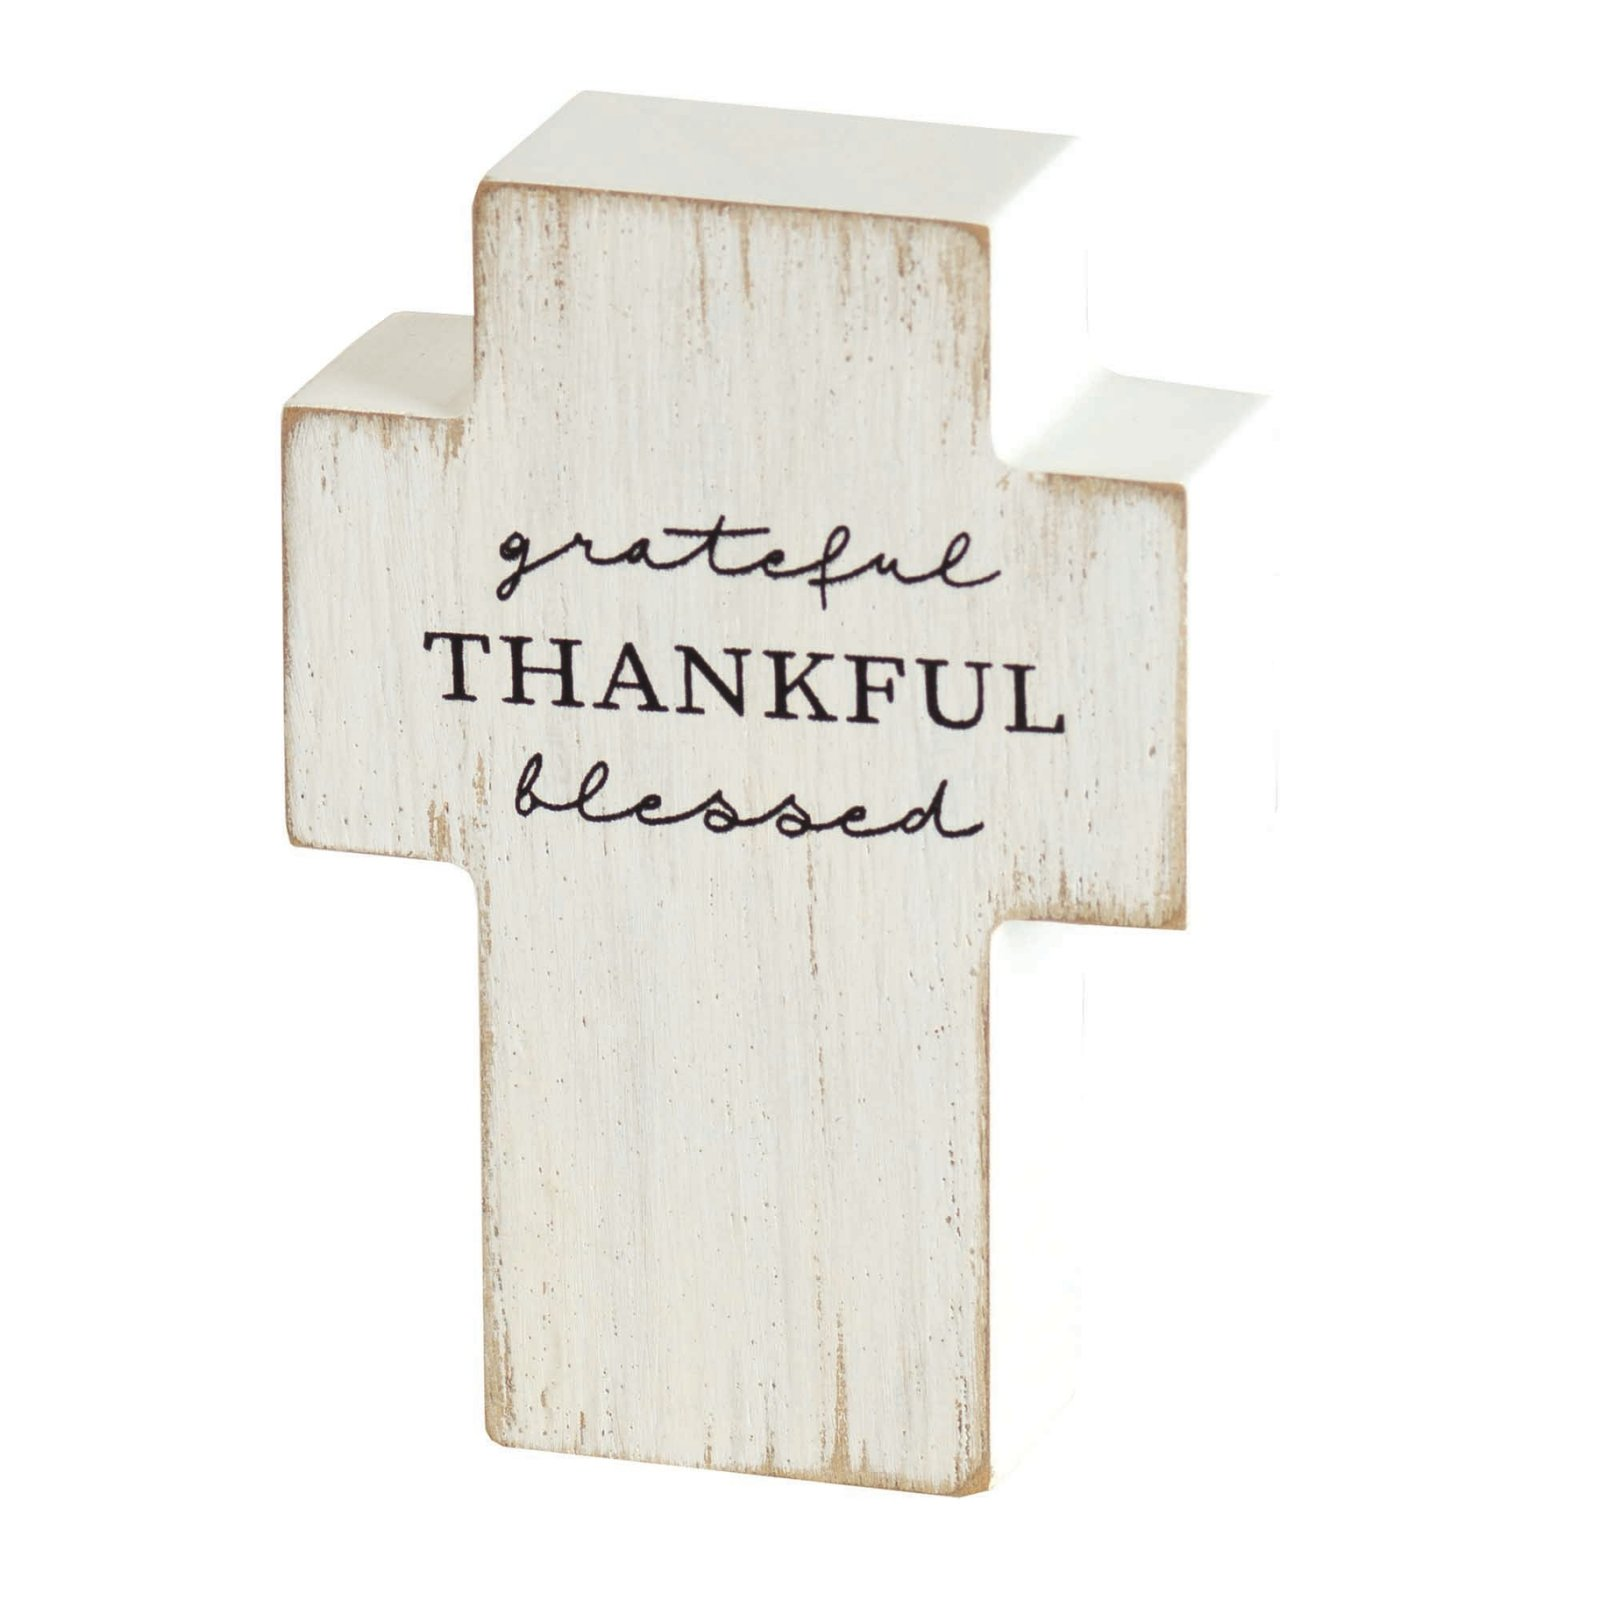 Grateful Thankful Blessed Tabletop Cross